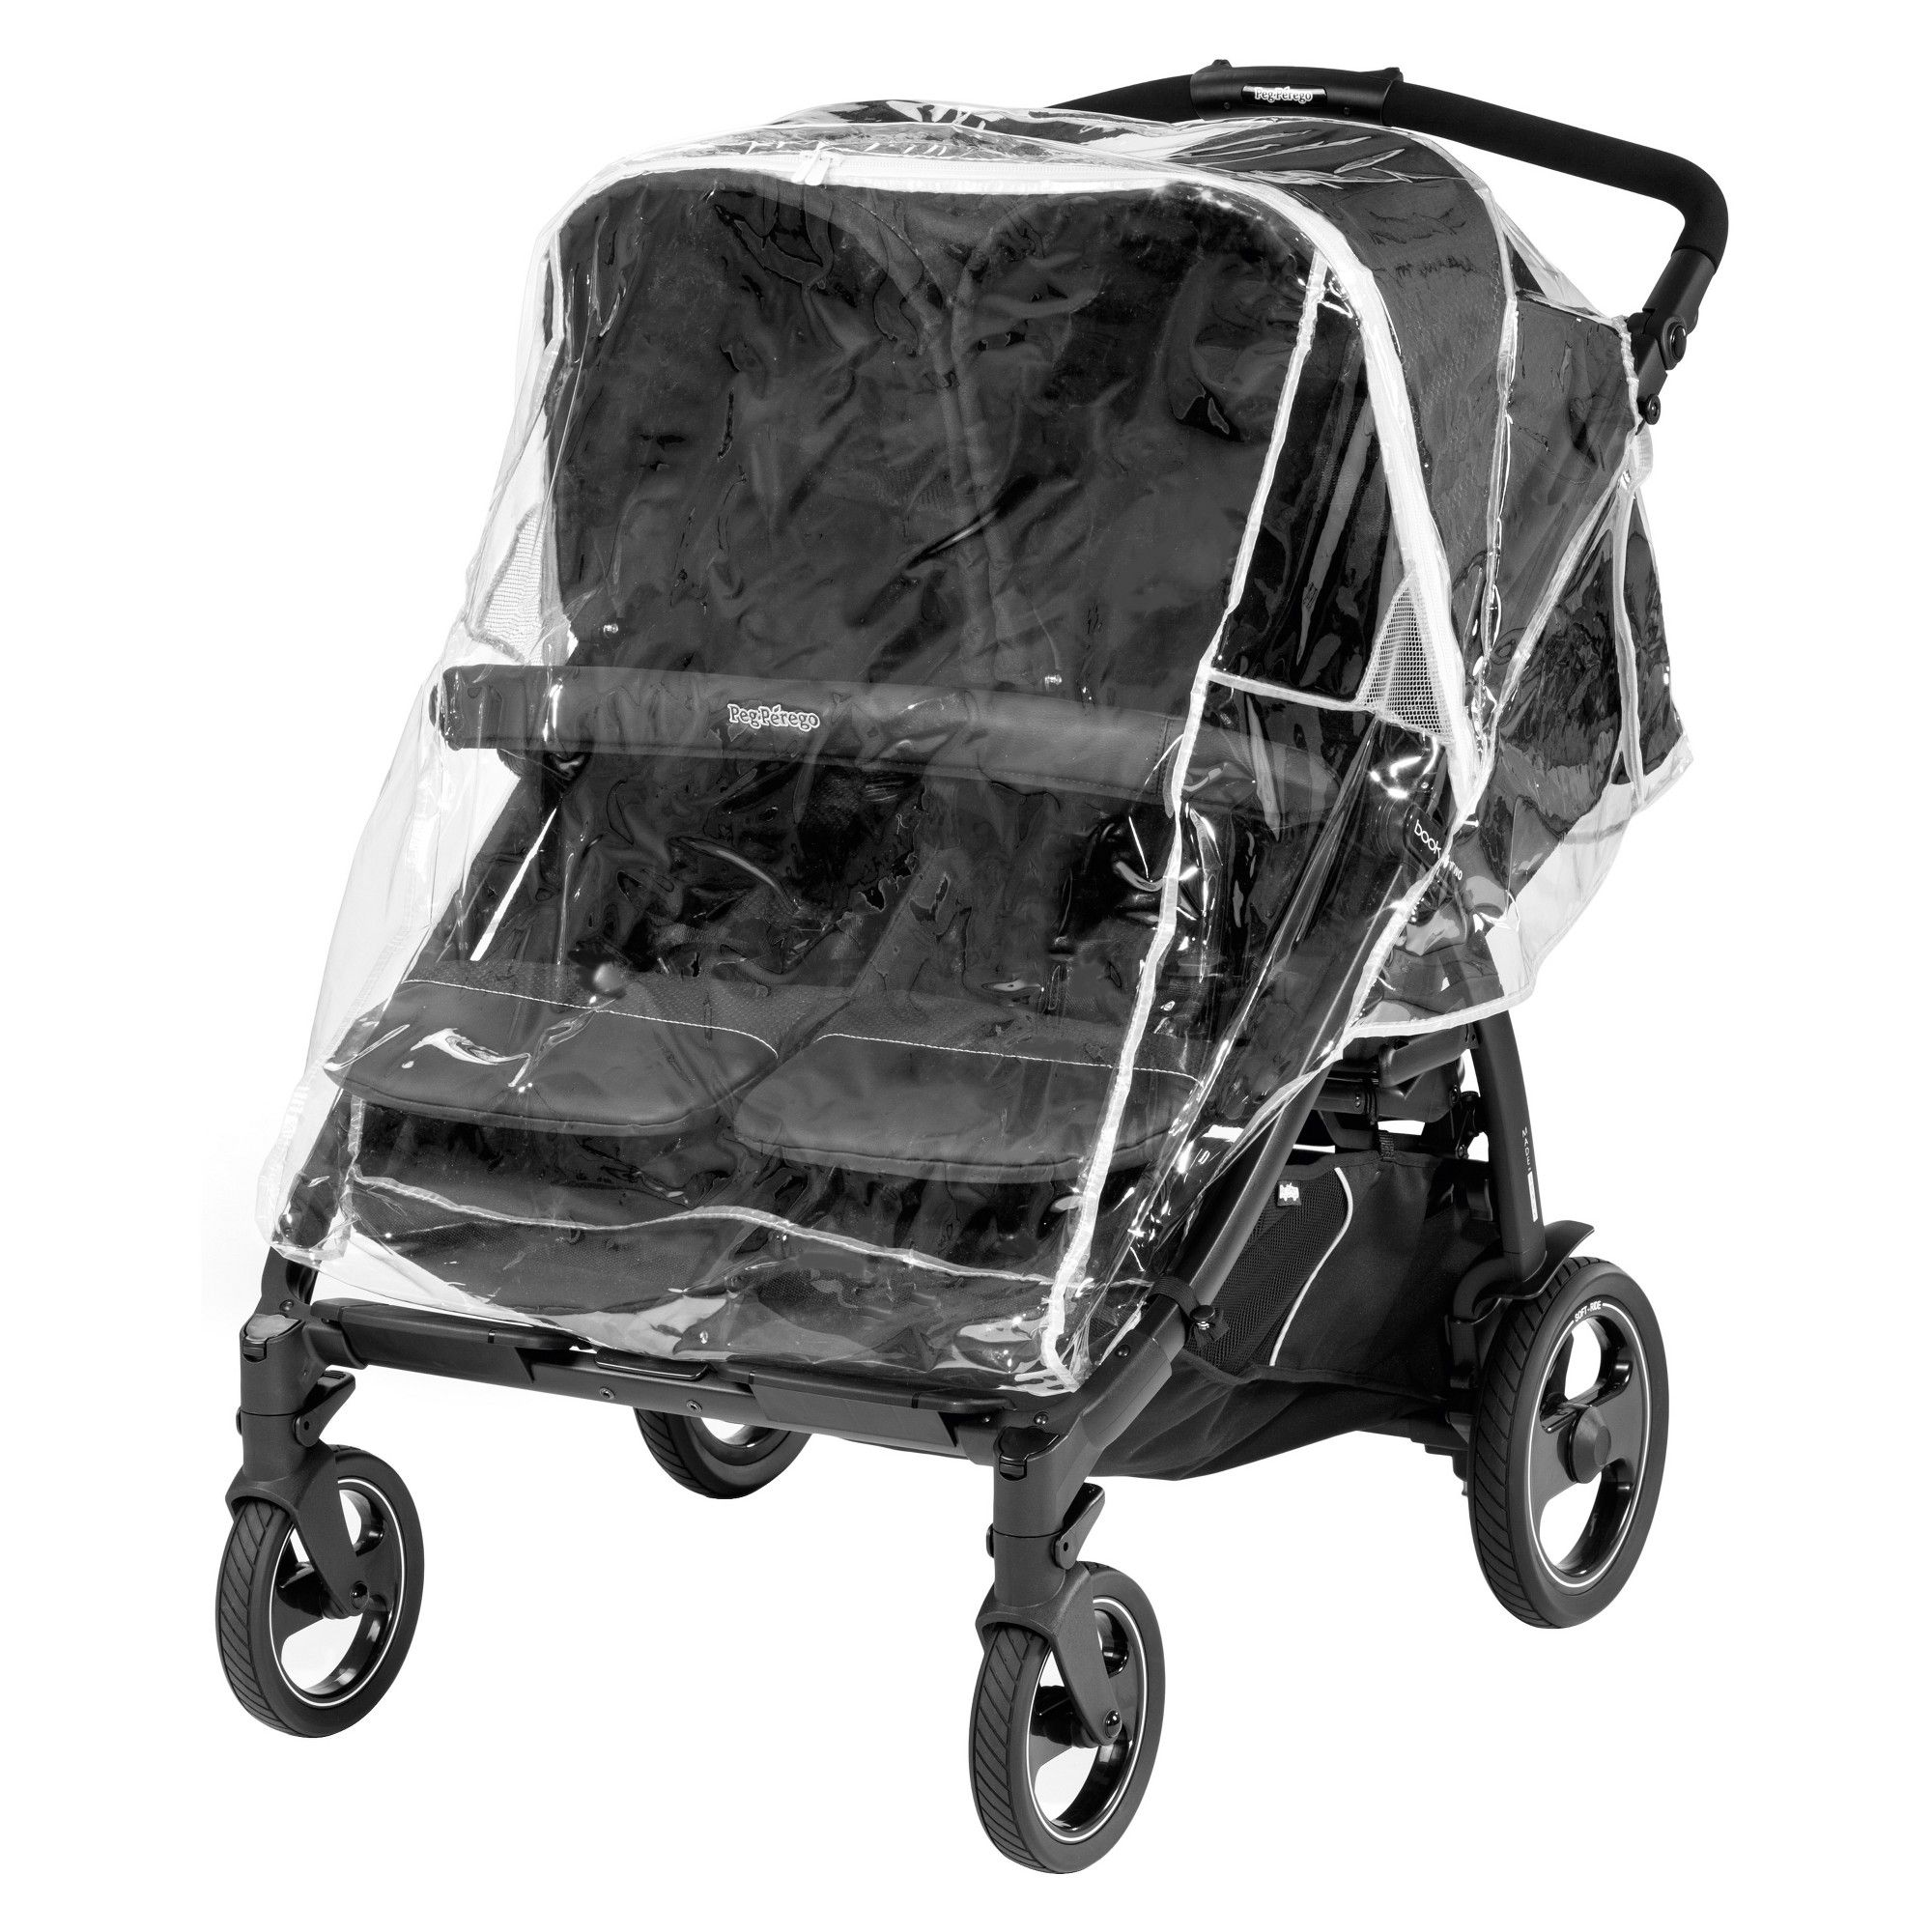 Peg Perego Rain Cover Book For Two, Clear Peg perego